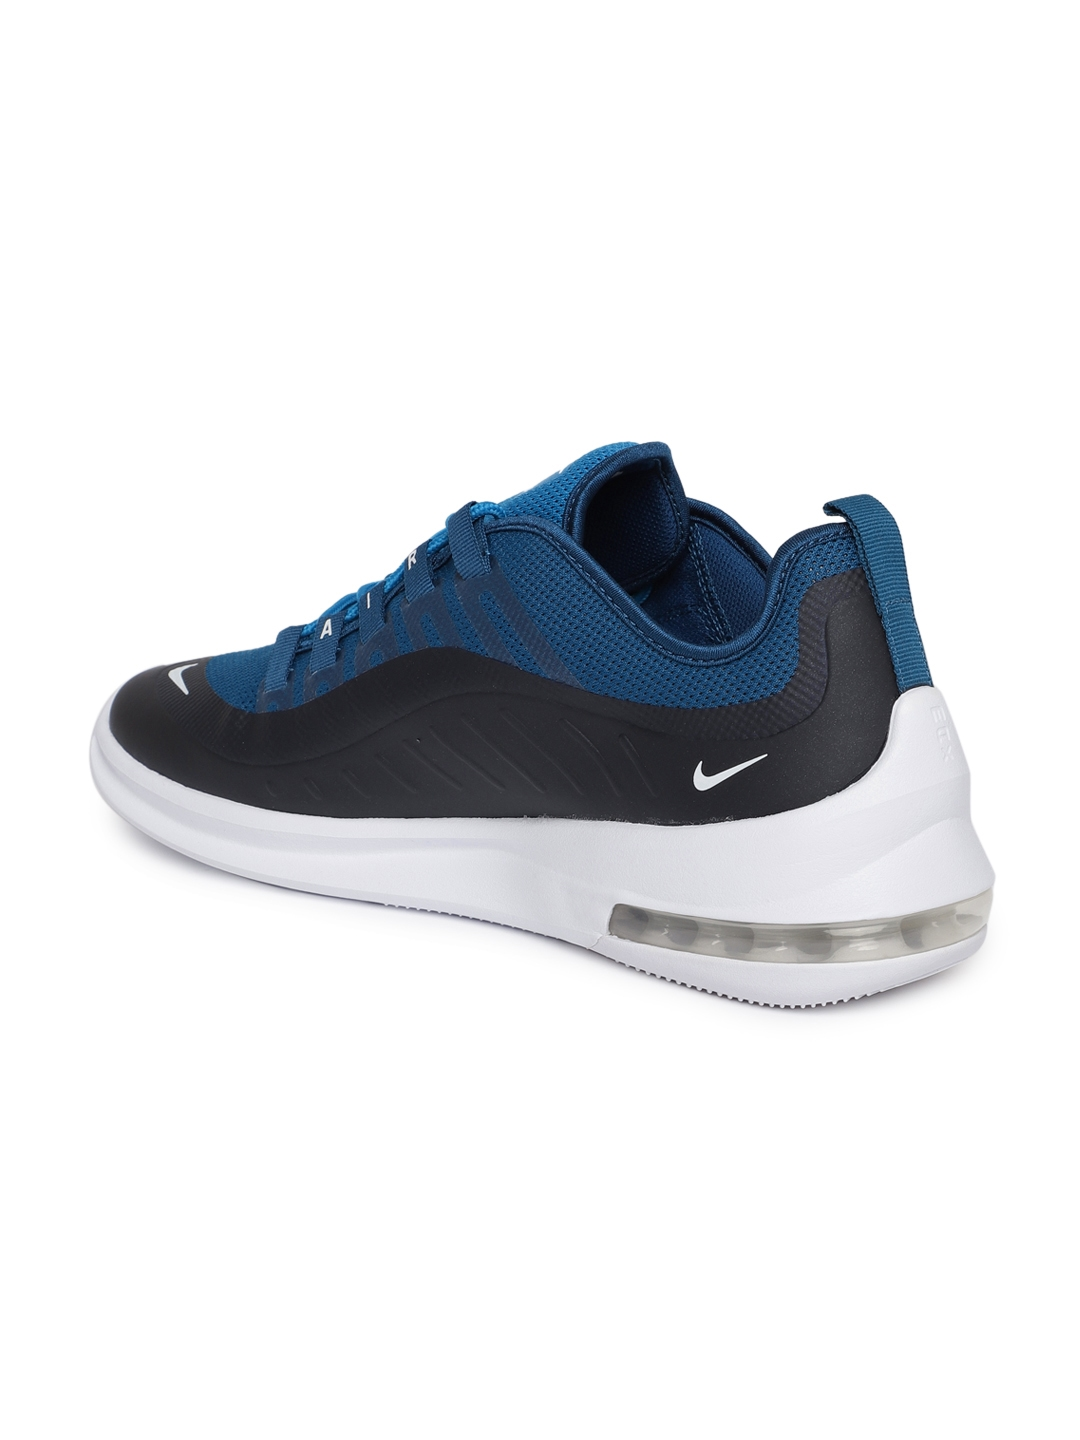 Buy Nike Men Blue   Black Air Max Axis Sneakers - Casual Shoes for ... 033d27e72